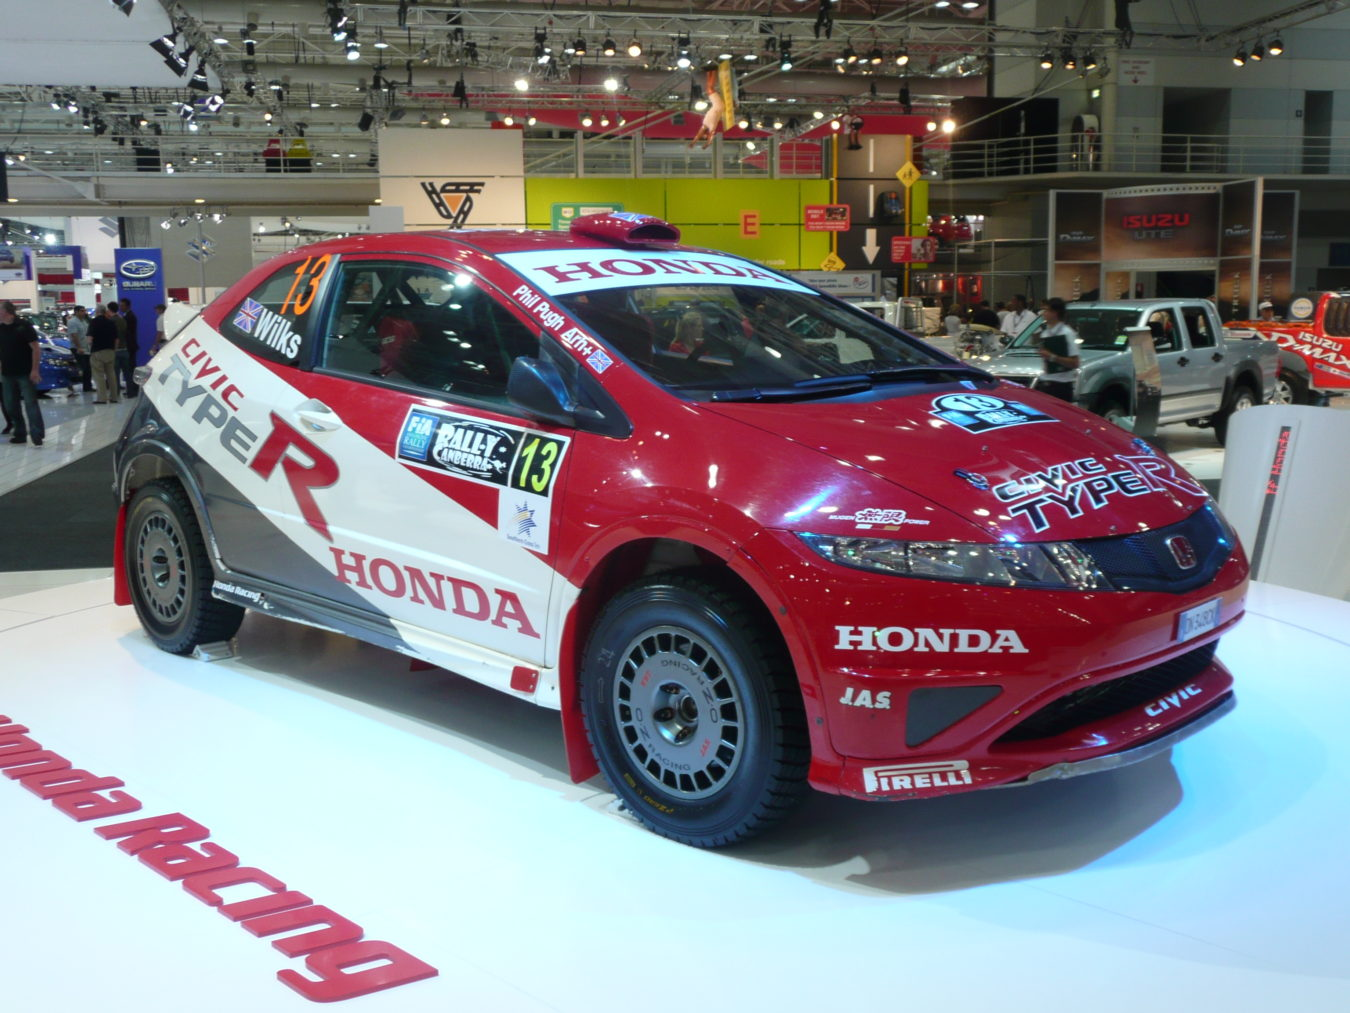 2006-2008_Honda_Civic_Type_R_R3_3-door_hatchback_01